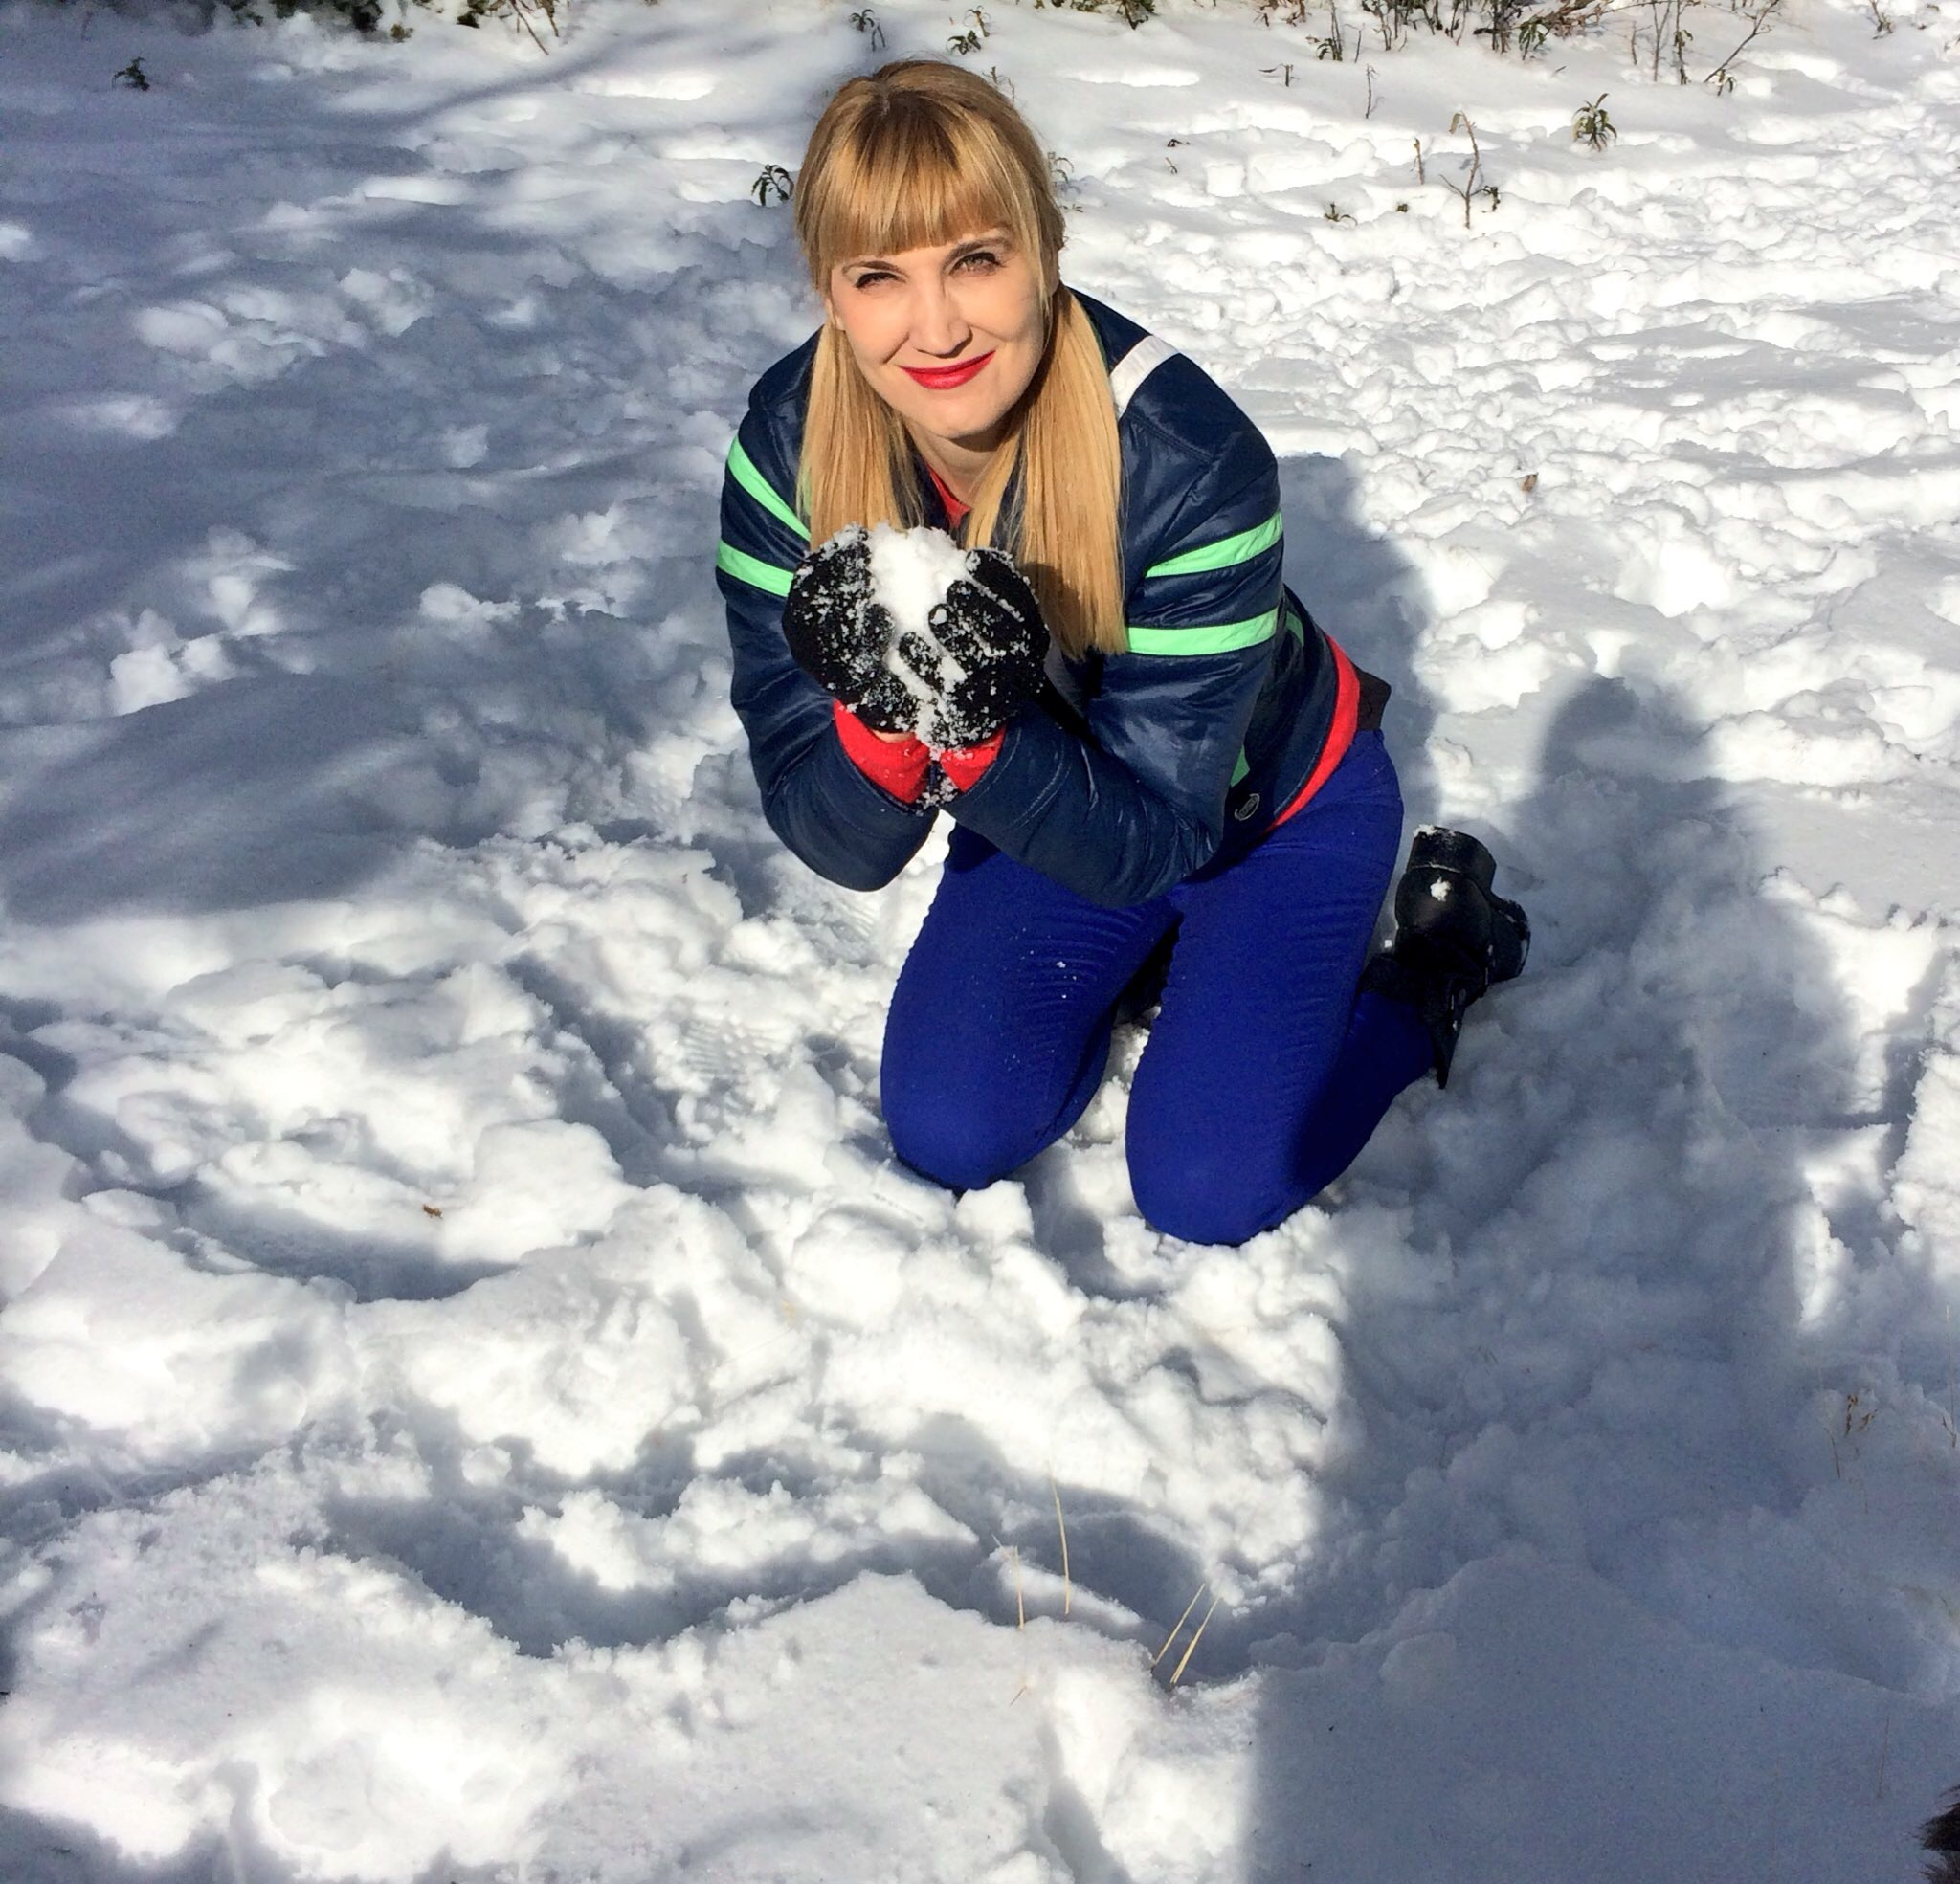 The author starts a snow fight (photo by Erin Korda)